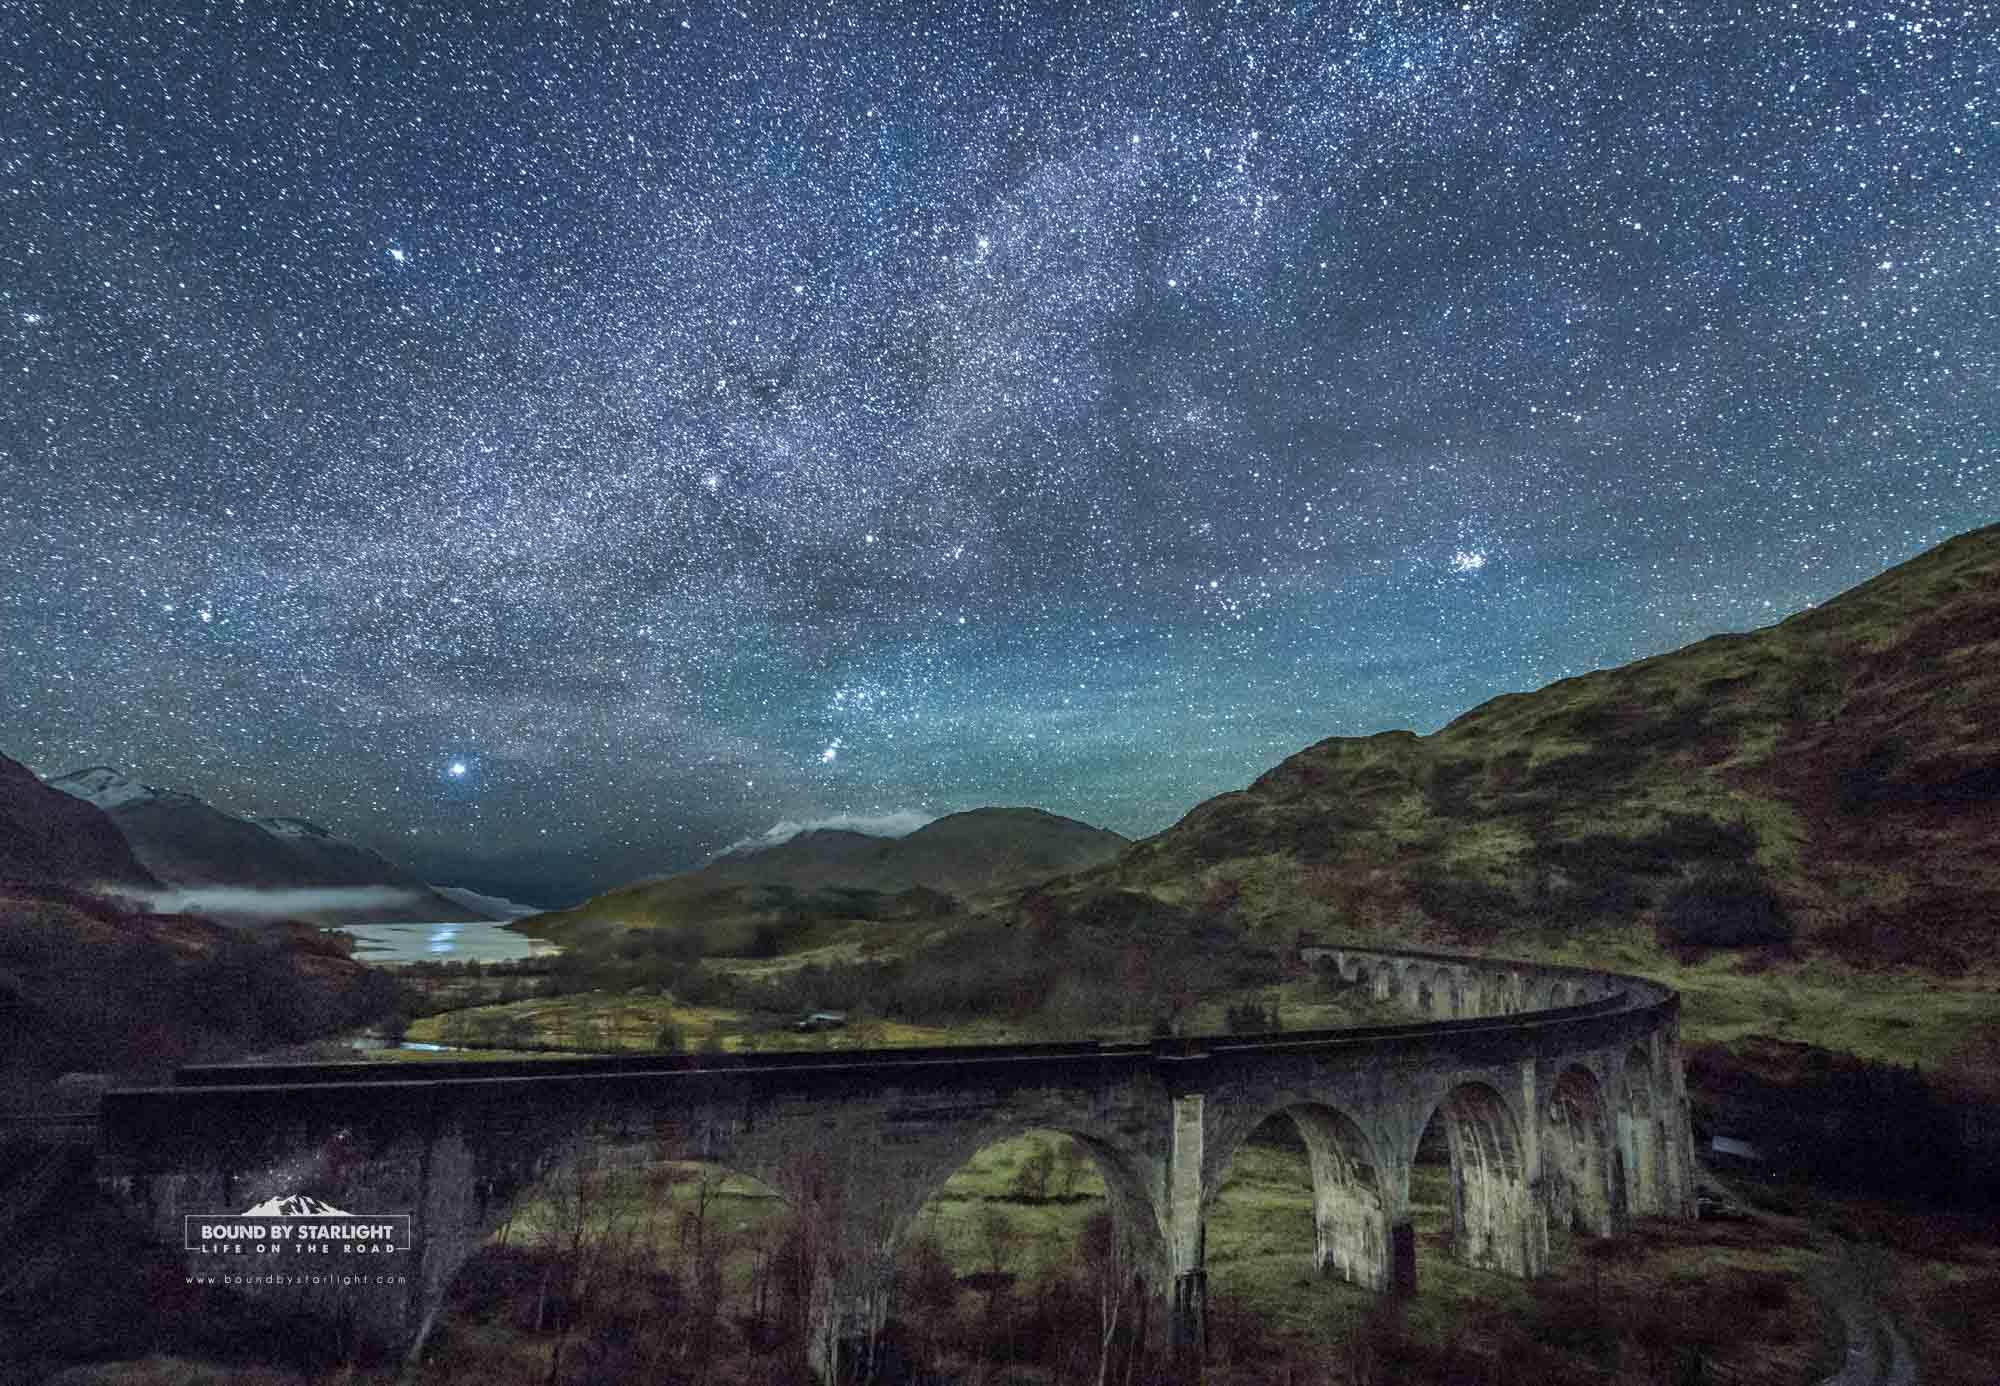 The world famous and often photographed Glenfinnan Viaduct as few have ever seen it, at night under a canopy of stars. Image © Stuart McIntyre